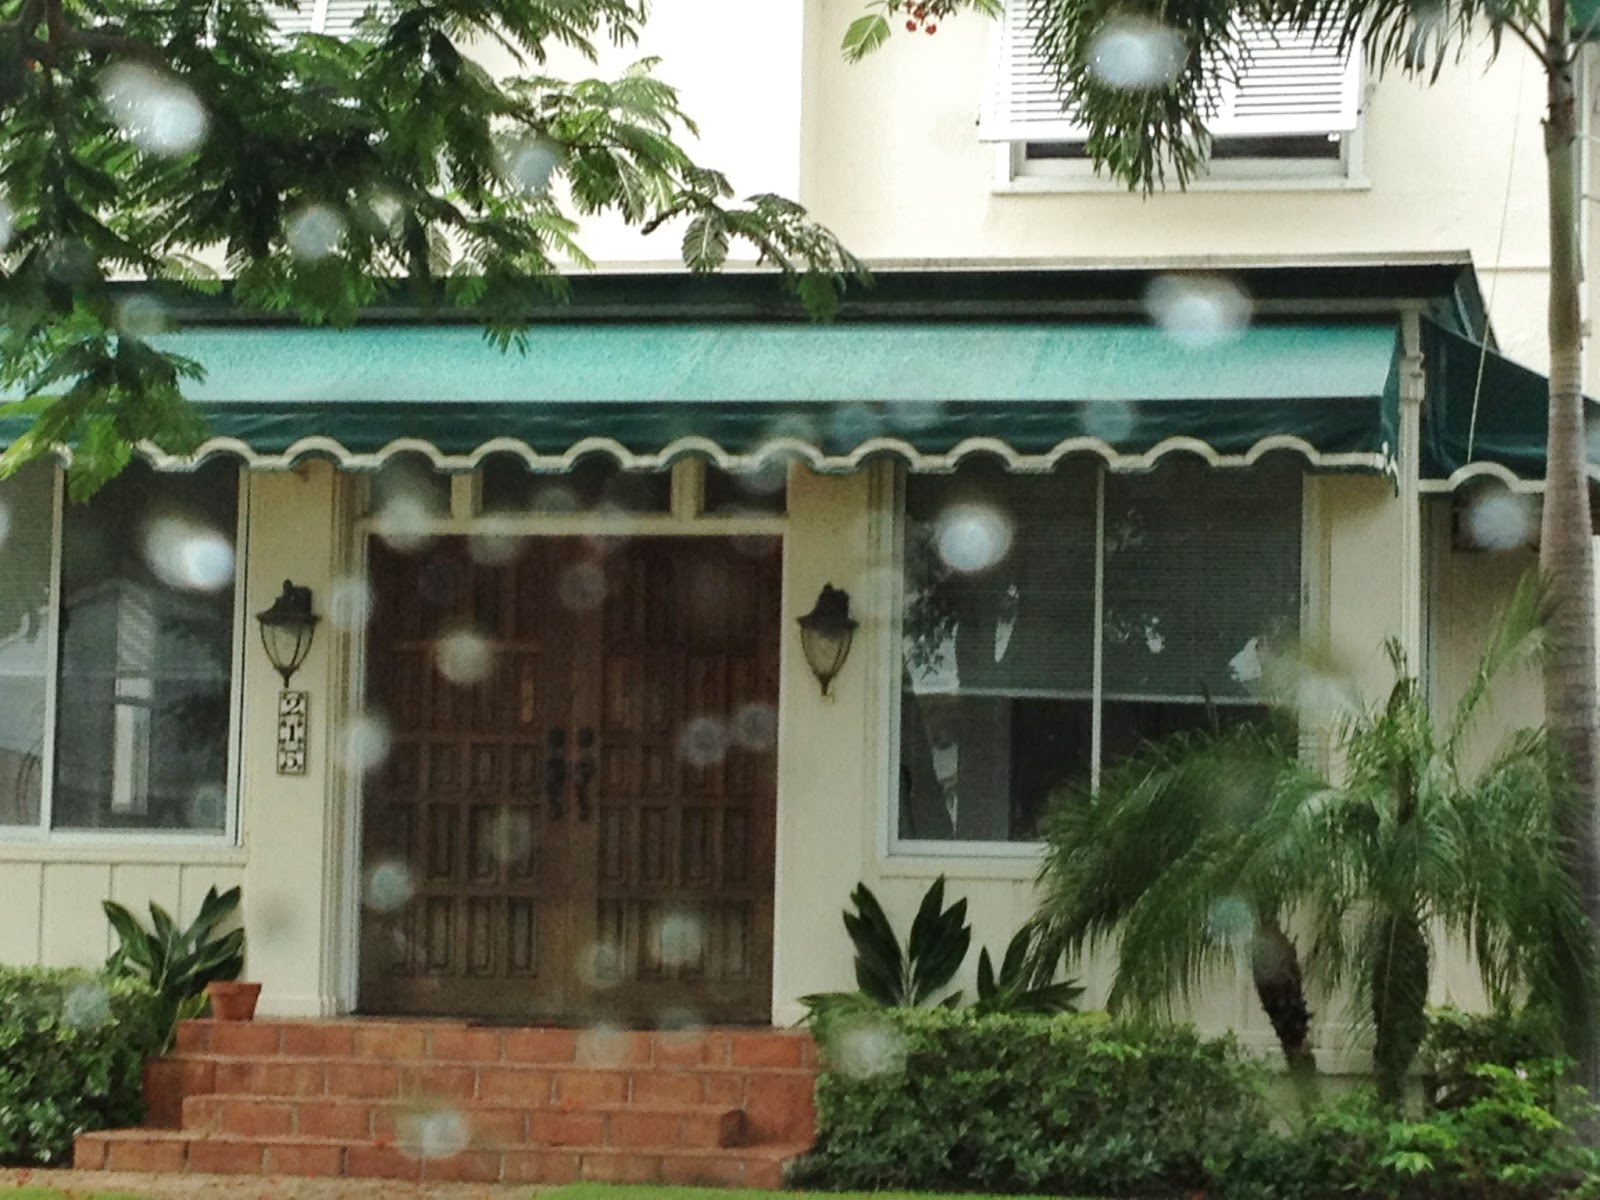 Decor Dreams & Schemes: Choosing an awning for your home and mine.